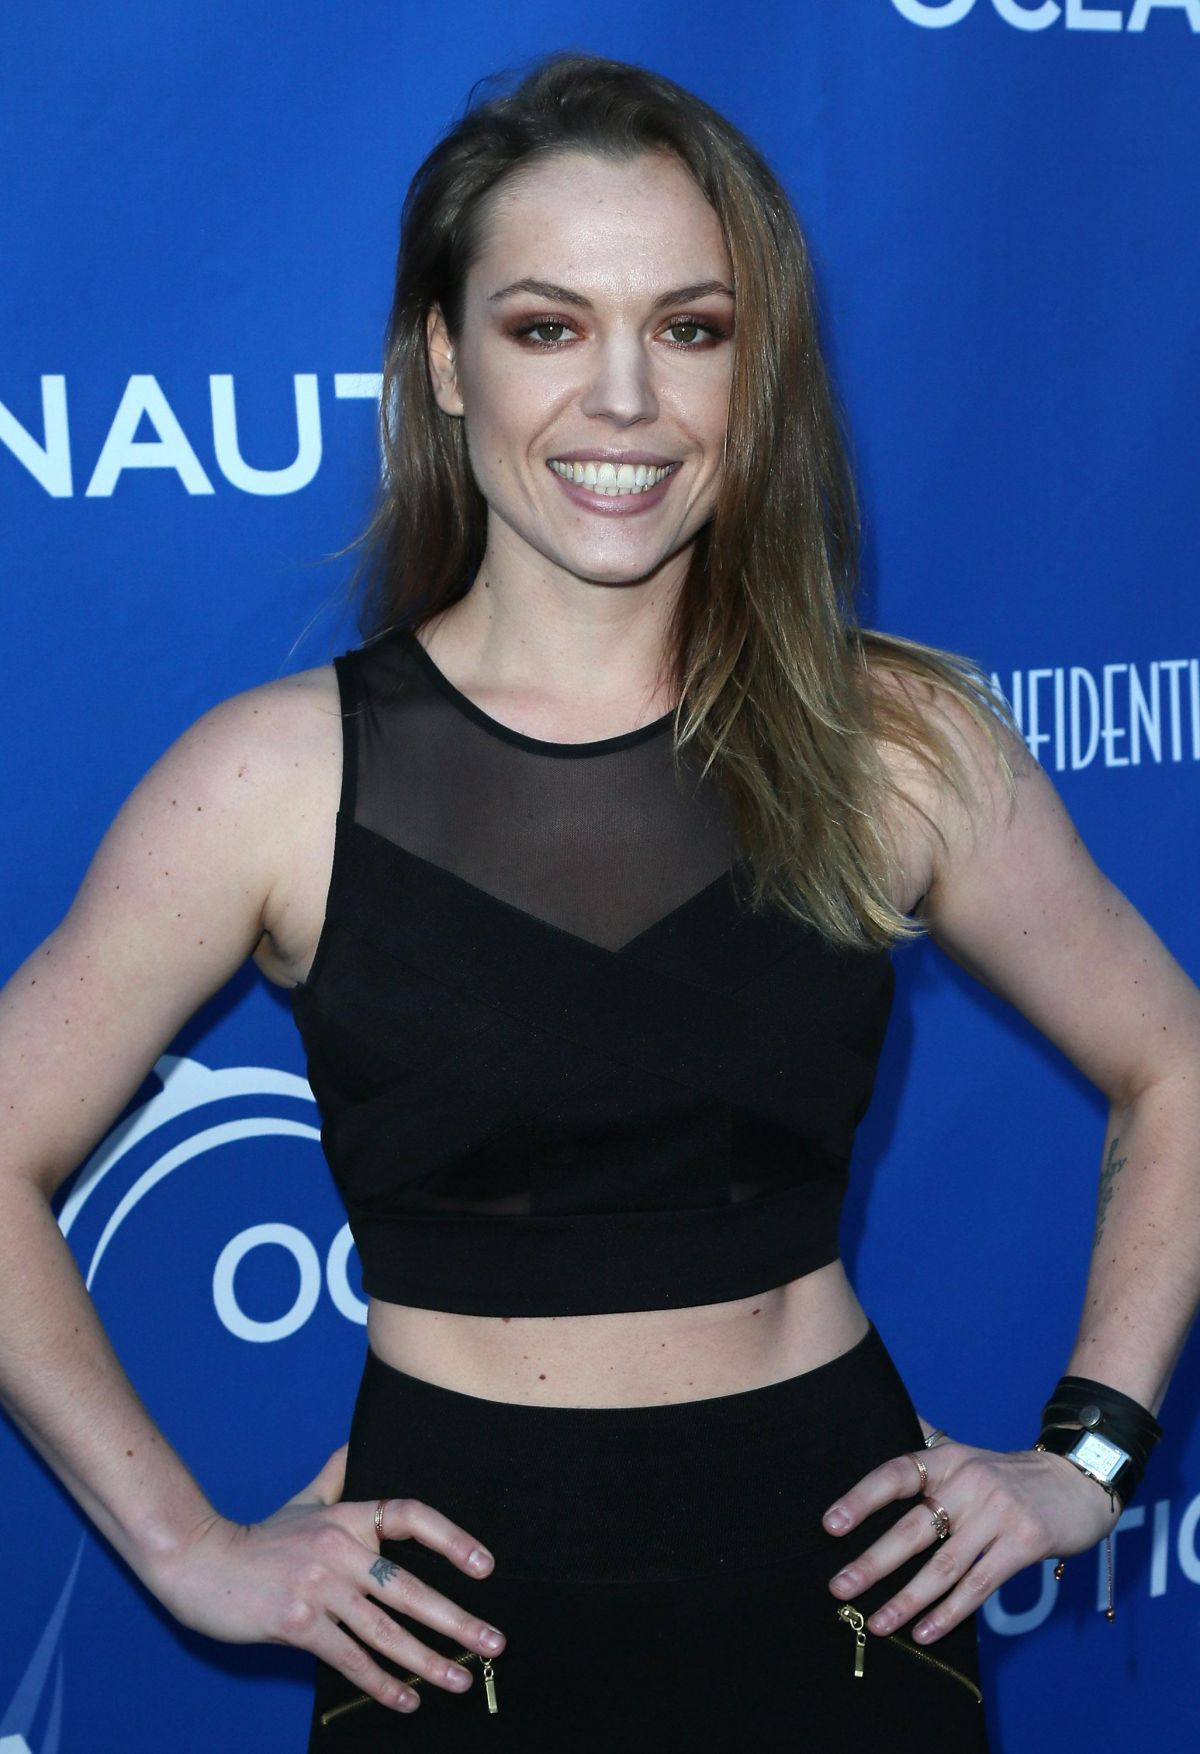 AGNES Bruckner at Nautica Oceana Beach House Party in Santa Monica